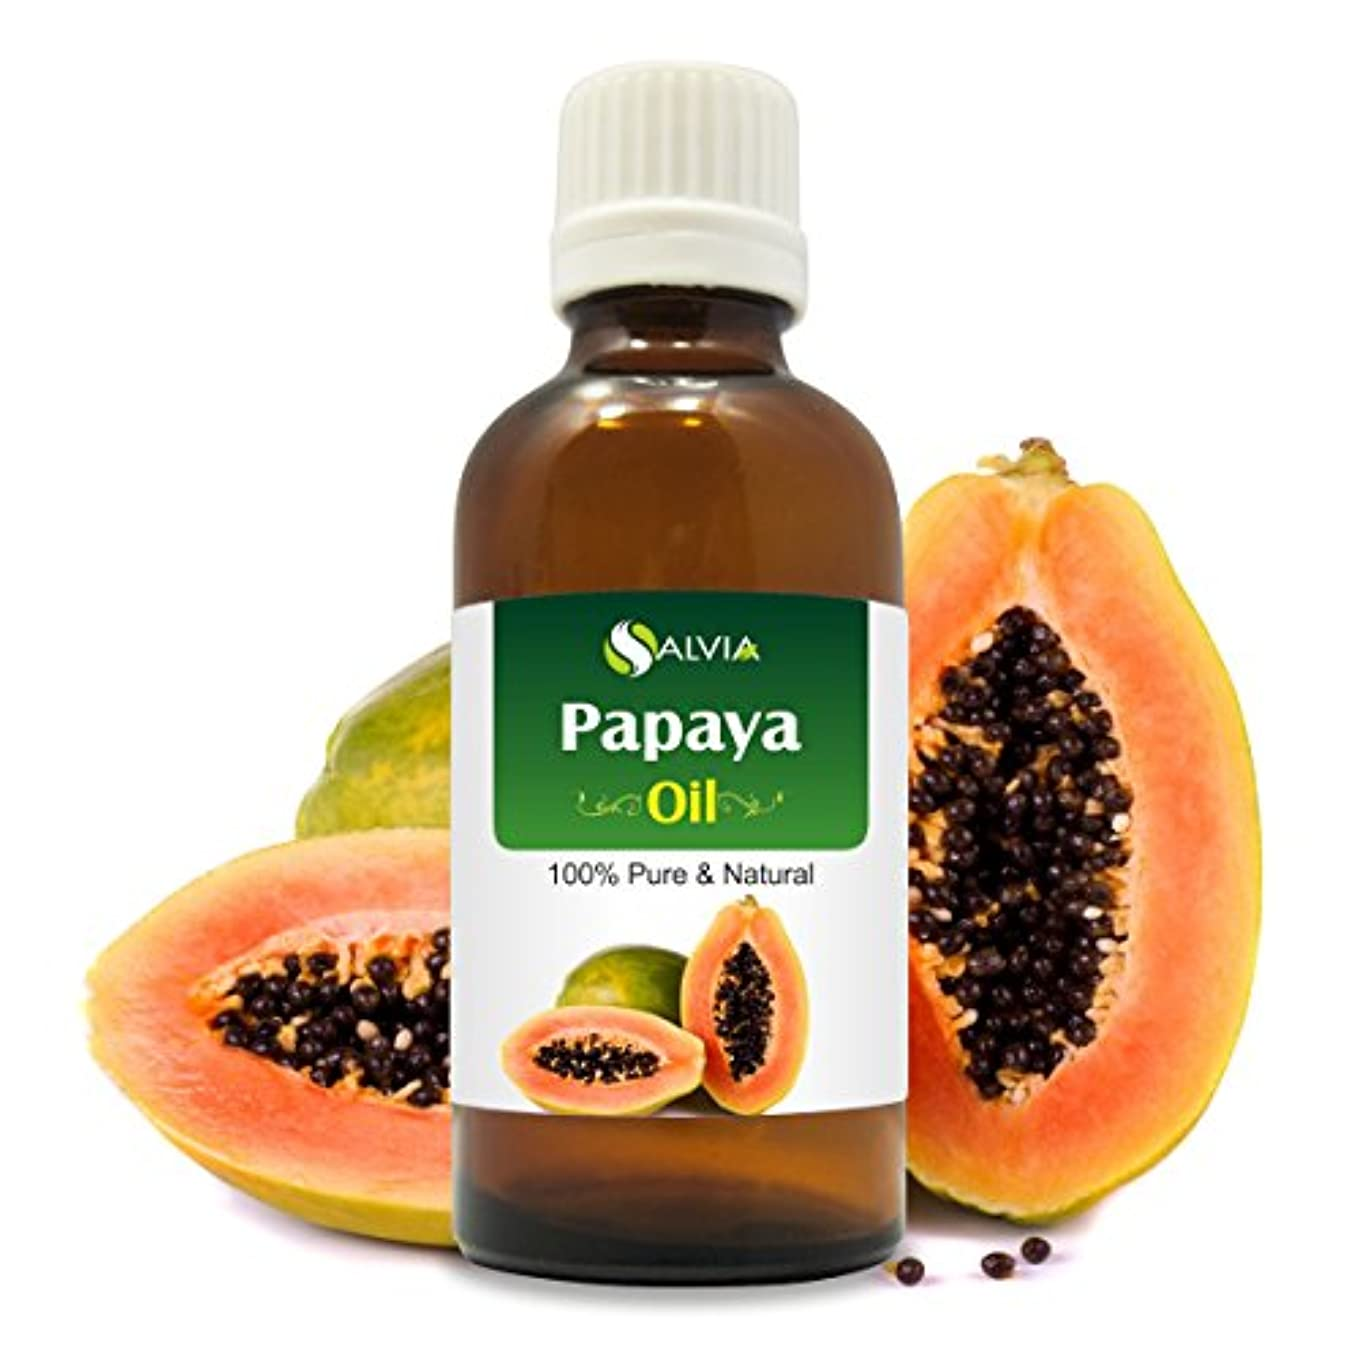 PAPAYA OIL 100% NATURAL PURE UNDILUTED UNCUT ESSENTIAL OIL 100ML